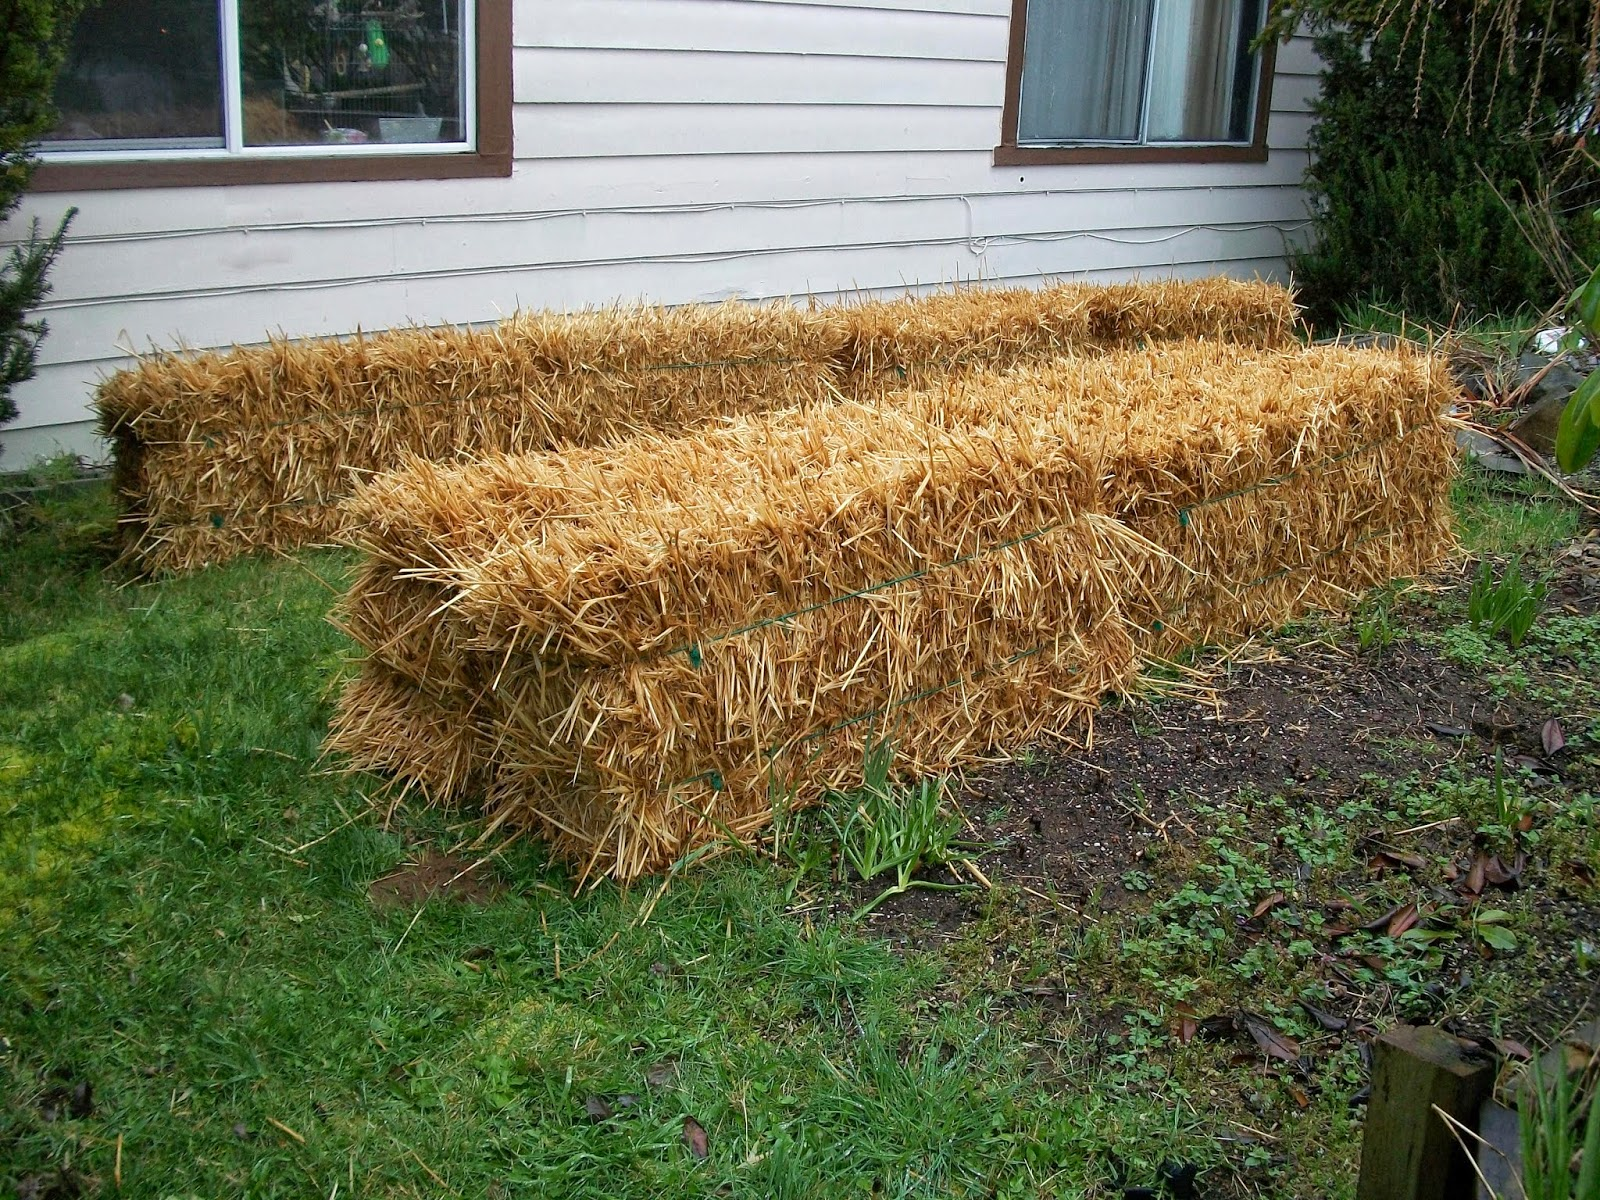 Jan 39 S Things Straw Bale Gardening Our Conditioning Schedule